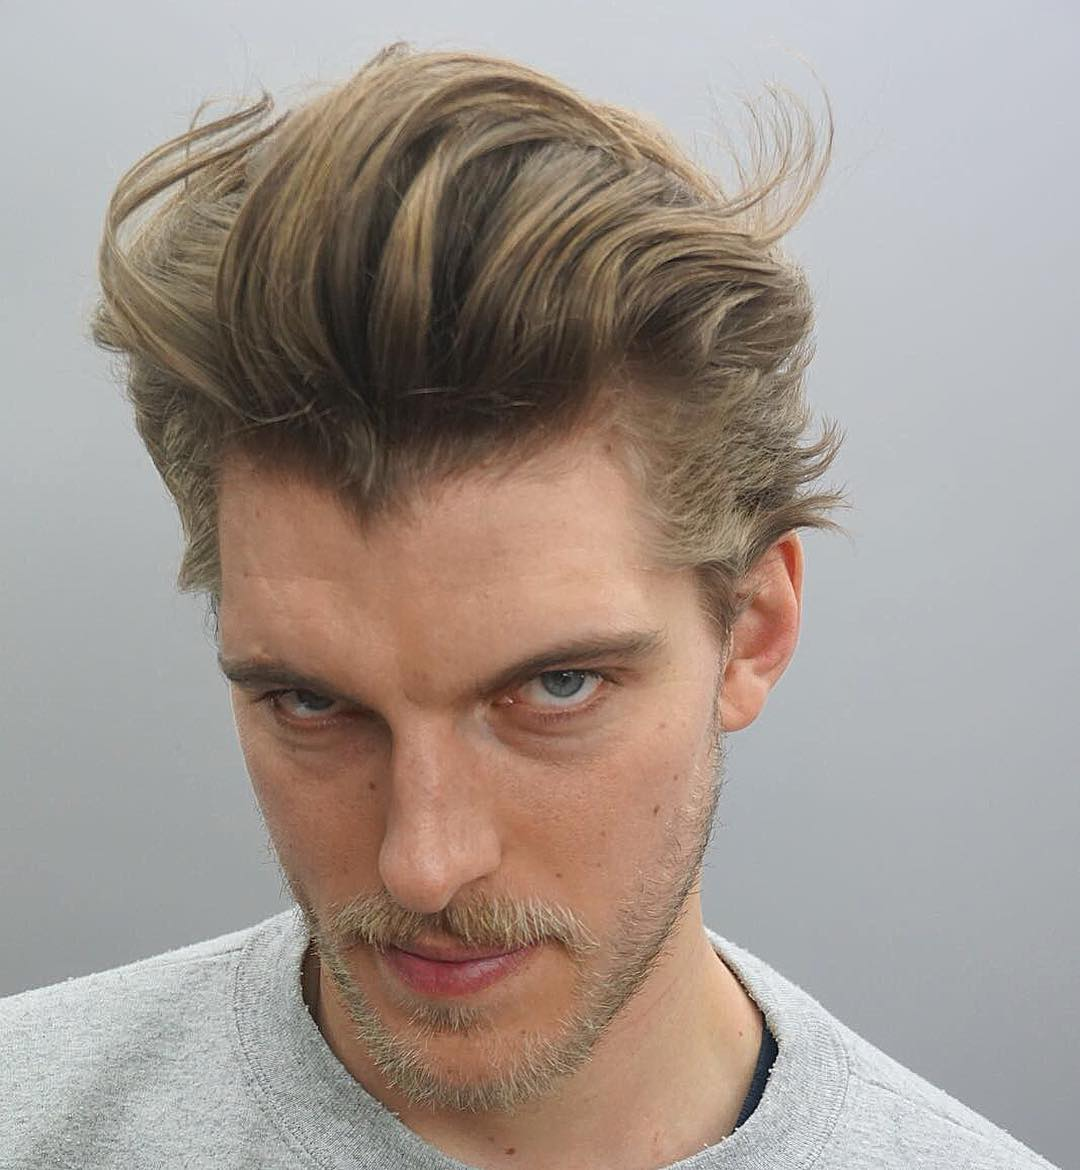 joshlamonaca textured hairstyle pompadour long hairstyles for men 2018